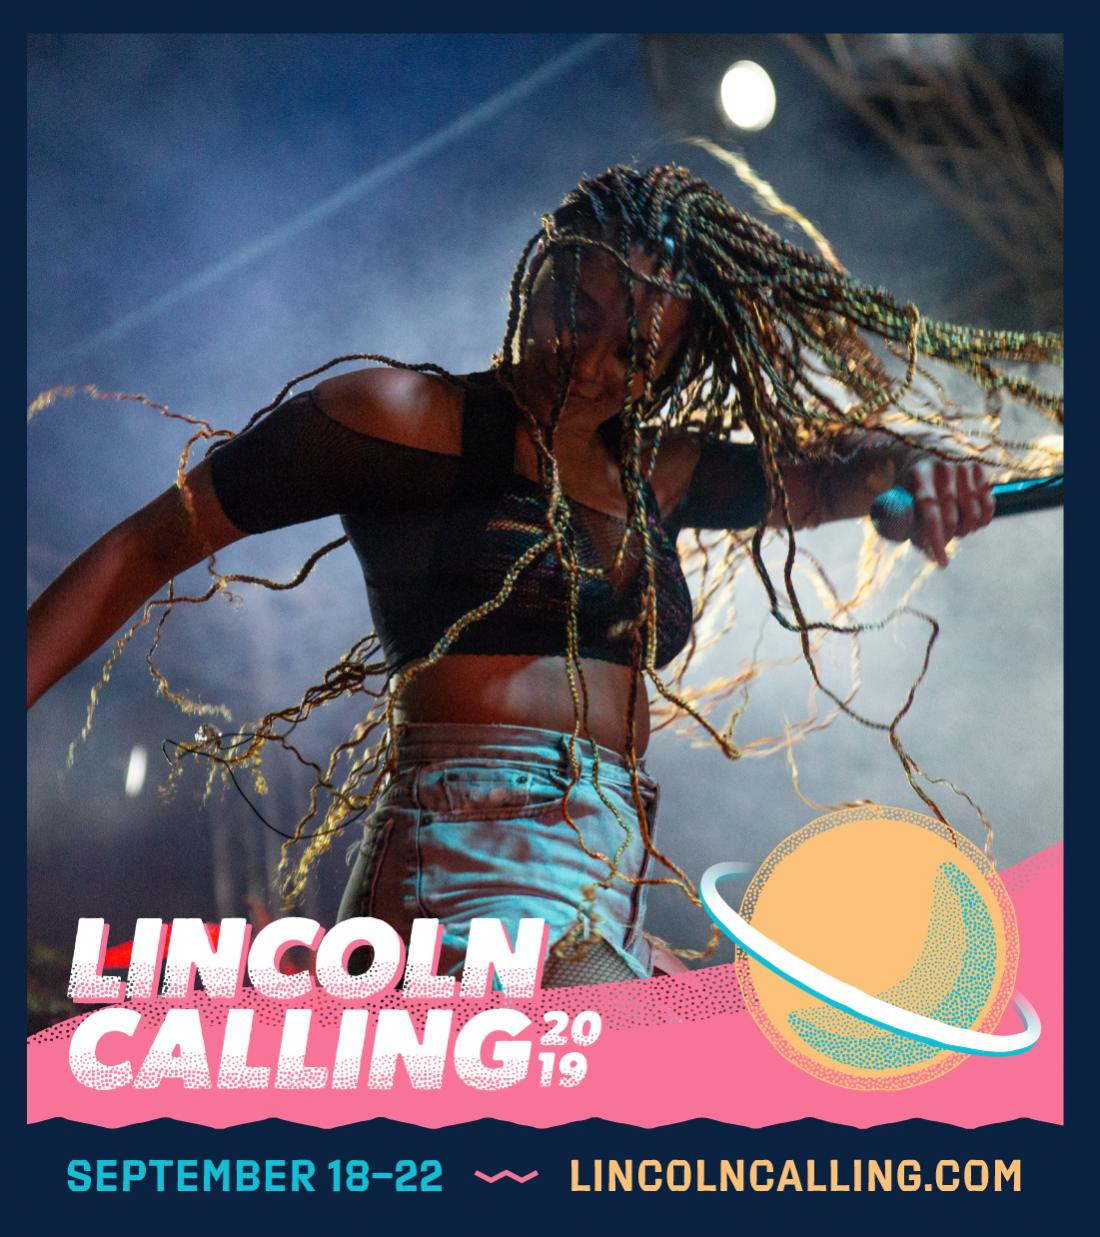 Lincoln Calling Music Festival in Lincoln, Nebraska